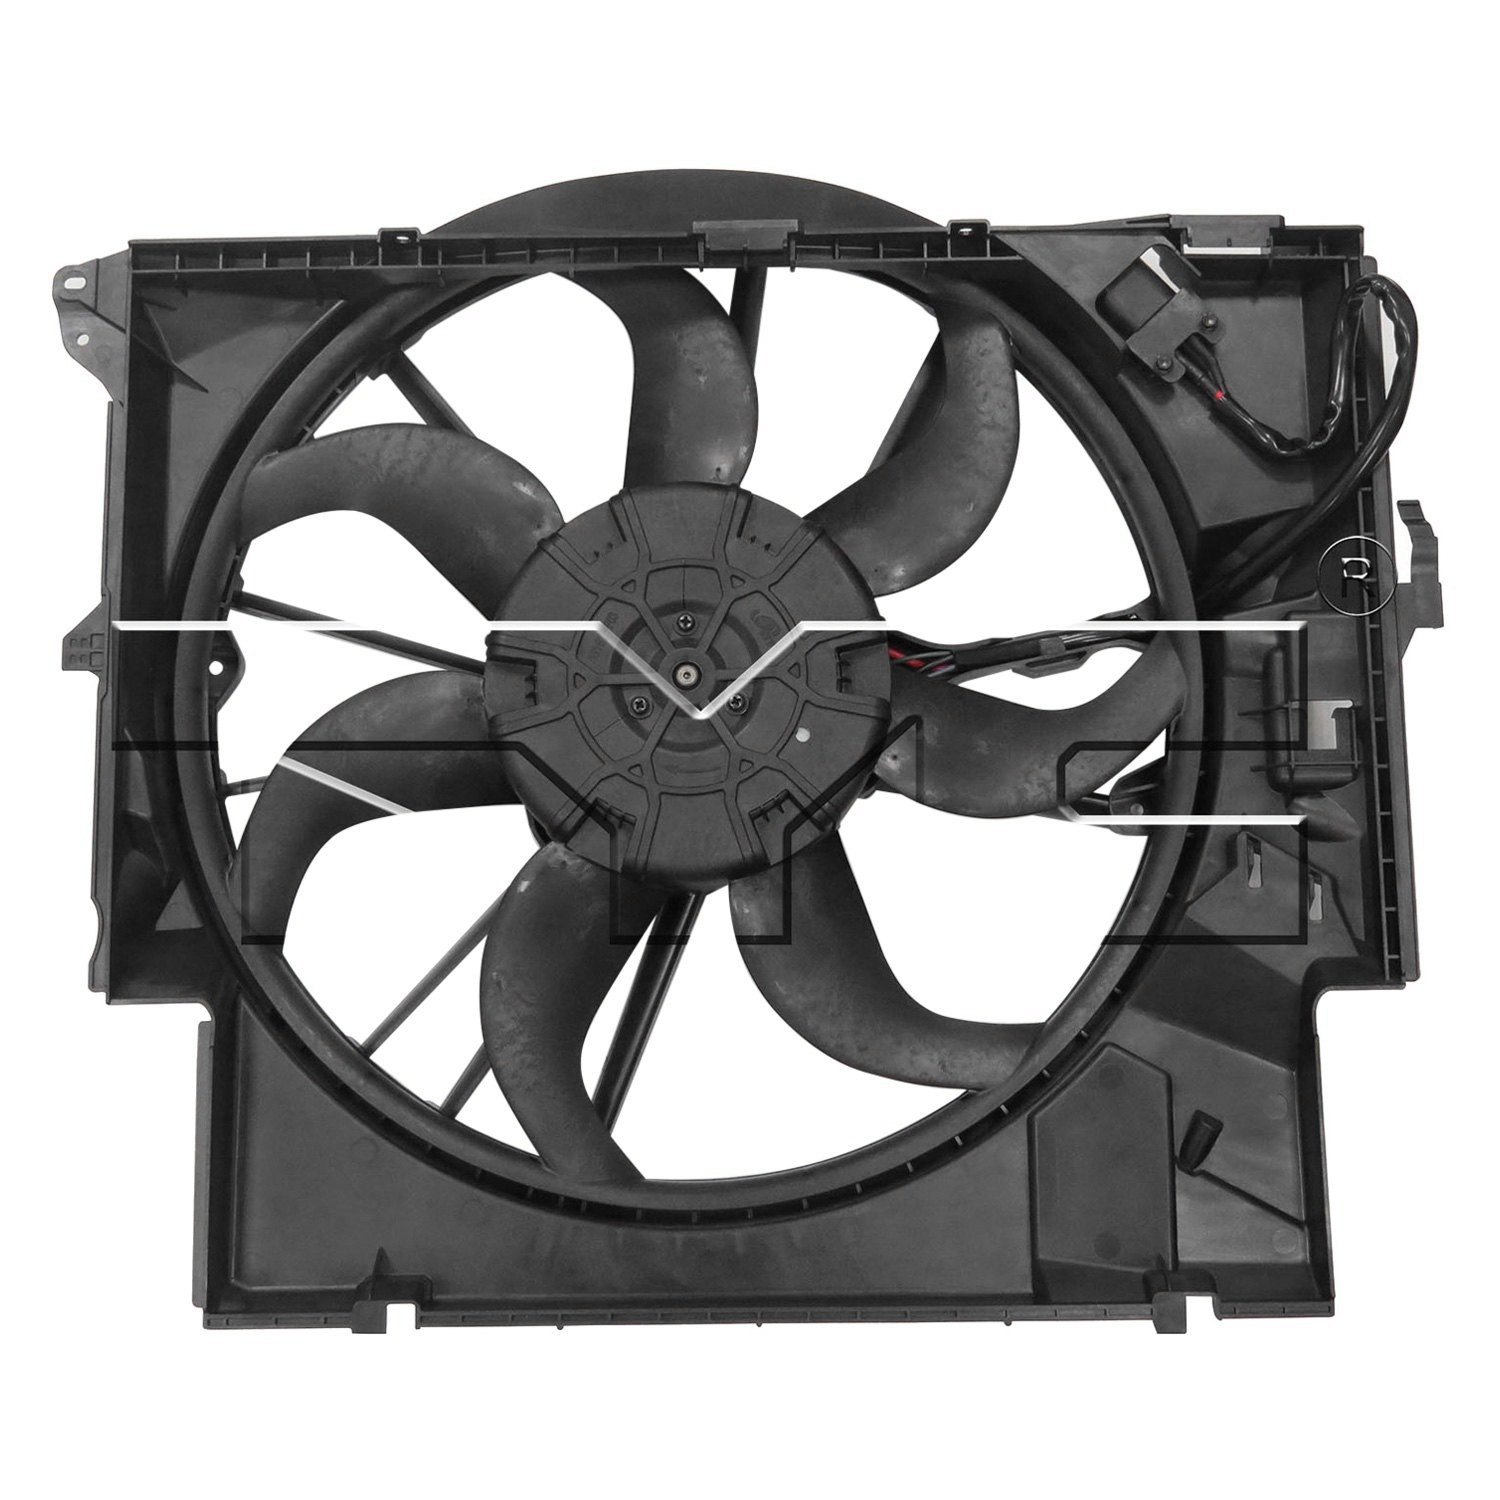 623430 tyc dual radiator and condenser fan ebay for Condenser fan motor replacement cost